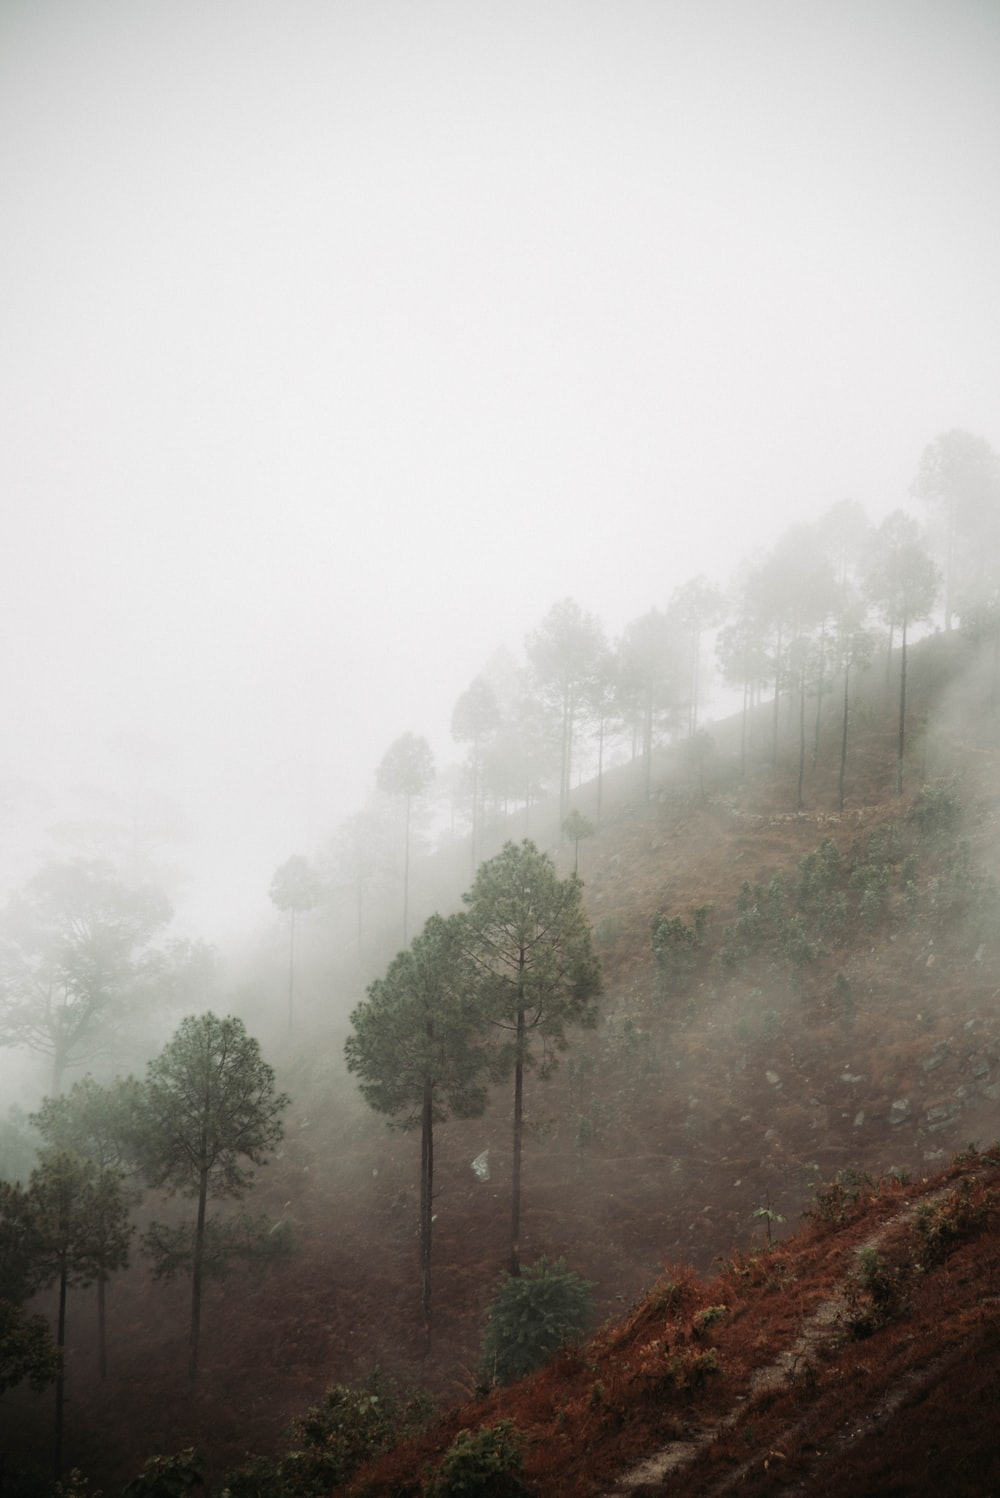 trees on hill with fog